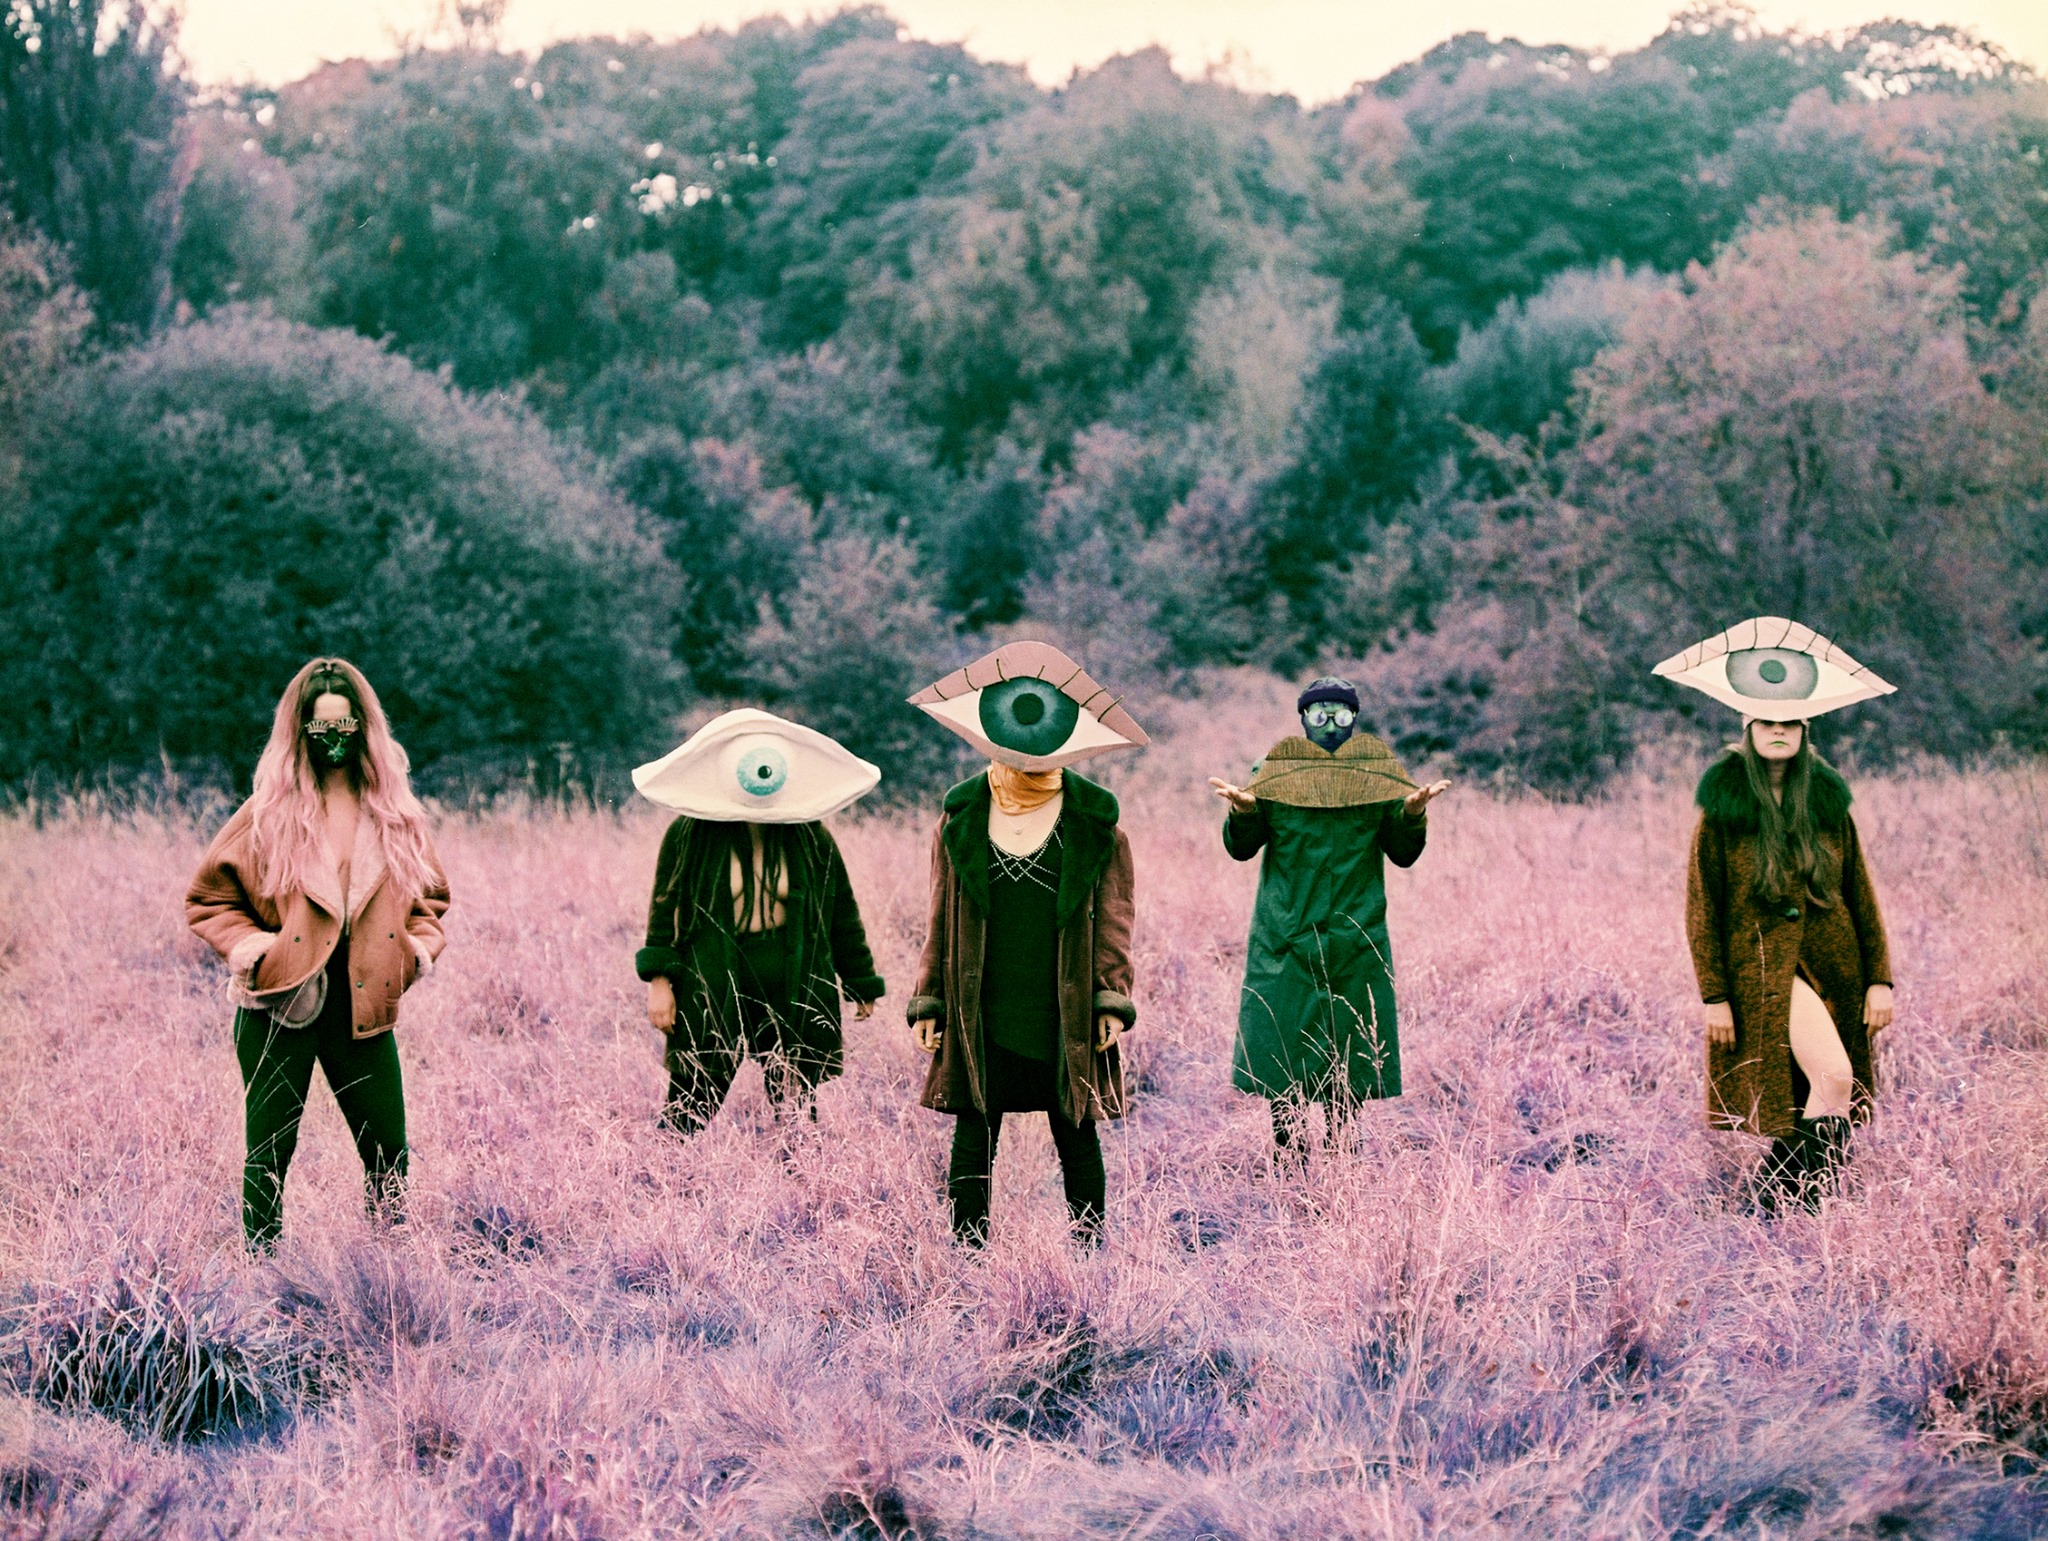 the five members of dorcha stand in a field with abstract costumes